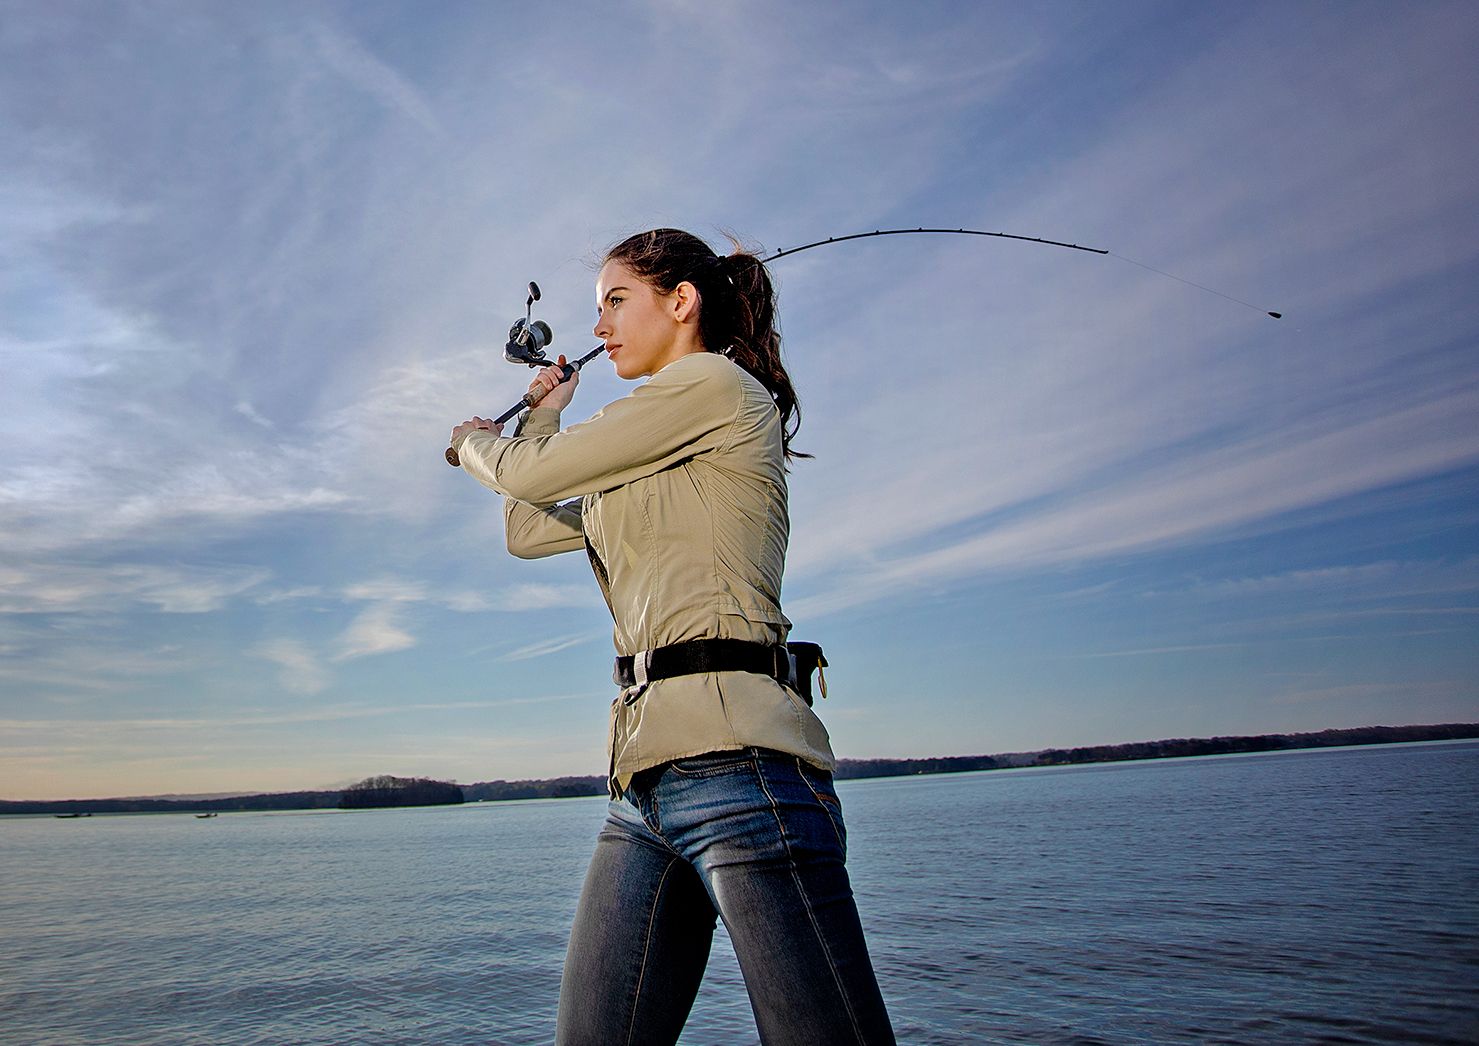 Woman On A Boat Casting A Fishing Rod